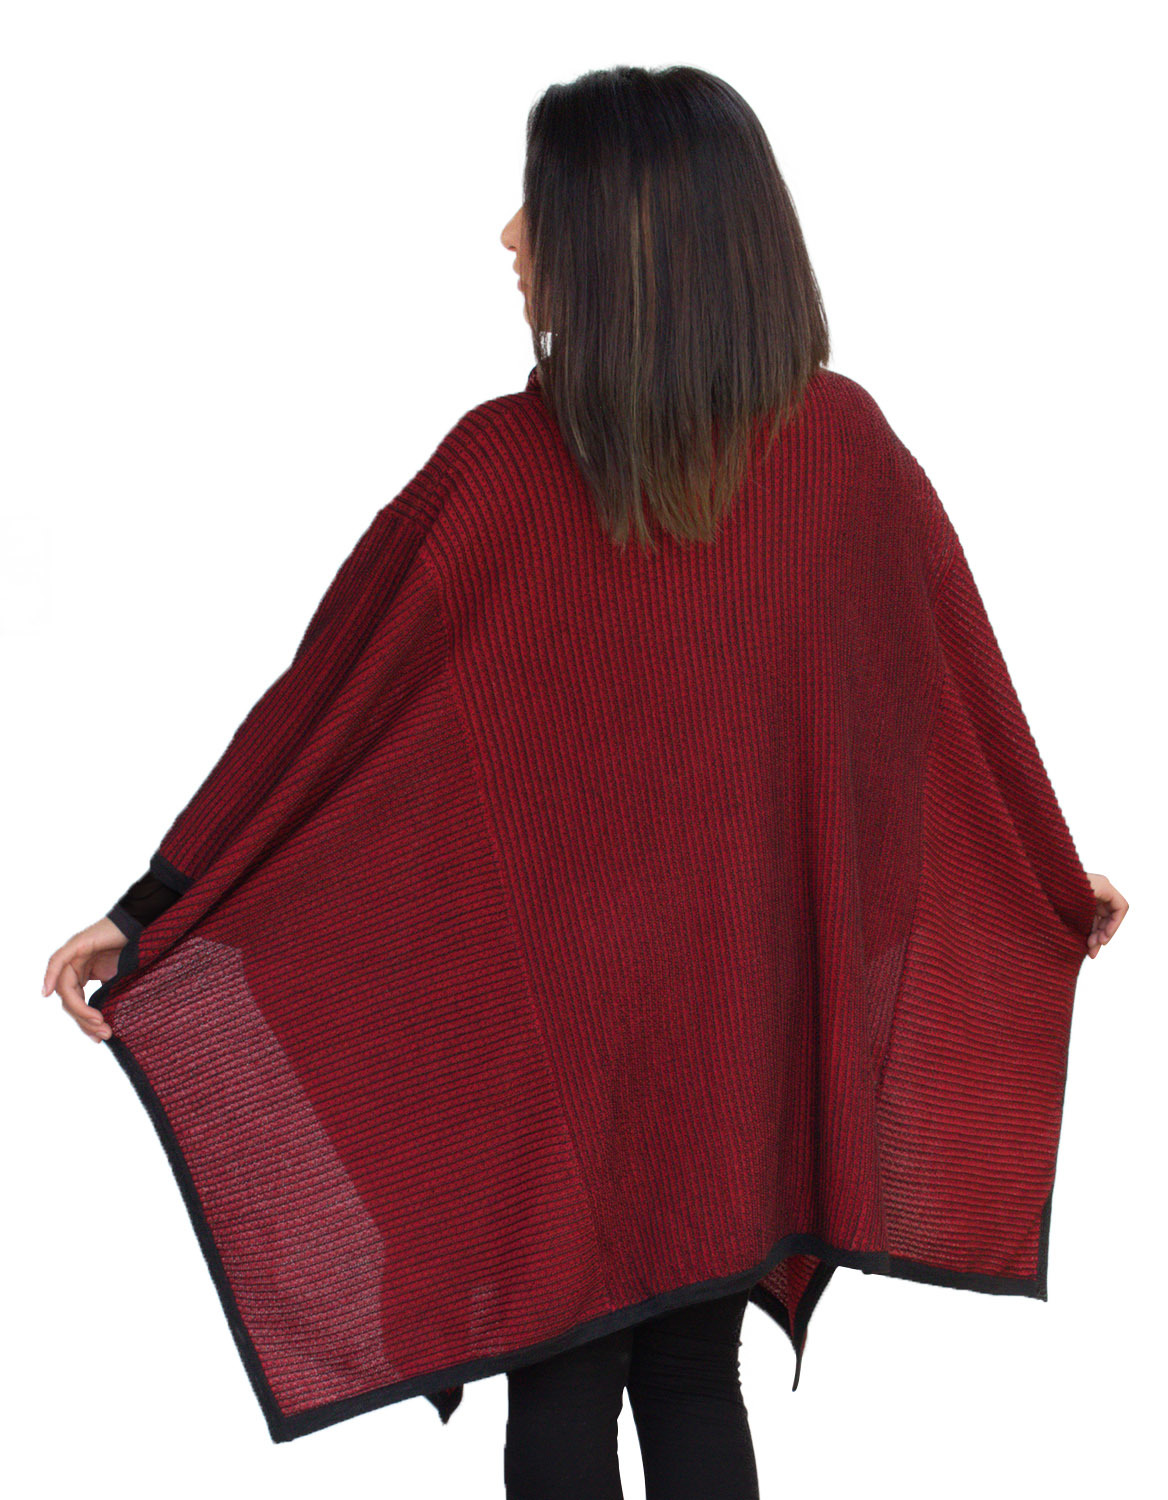 Alpaca Poncho Knitting Pattern : Womens Superfine Alpaca Wool Knitted Turtleneck Poncho